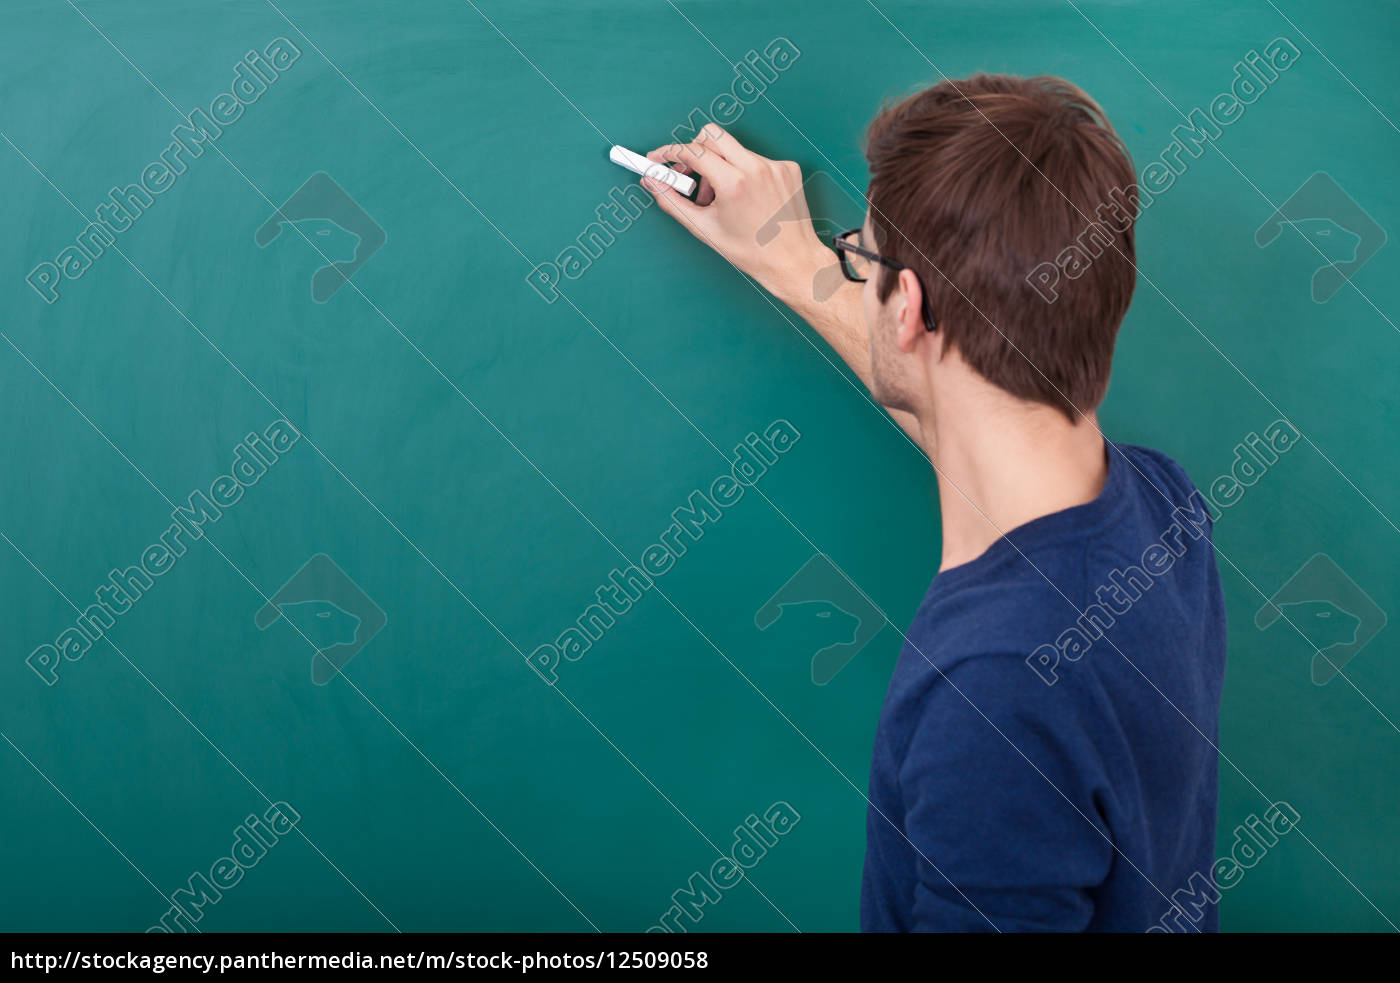 male, student, writing, on, chalkboard - 12509058